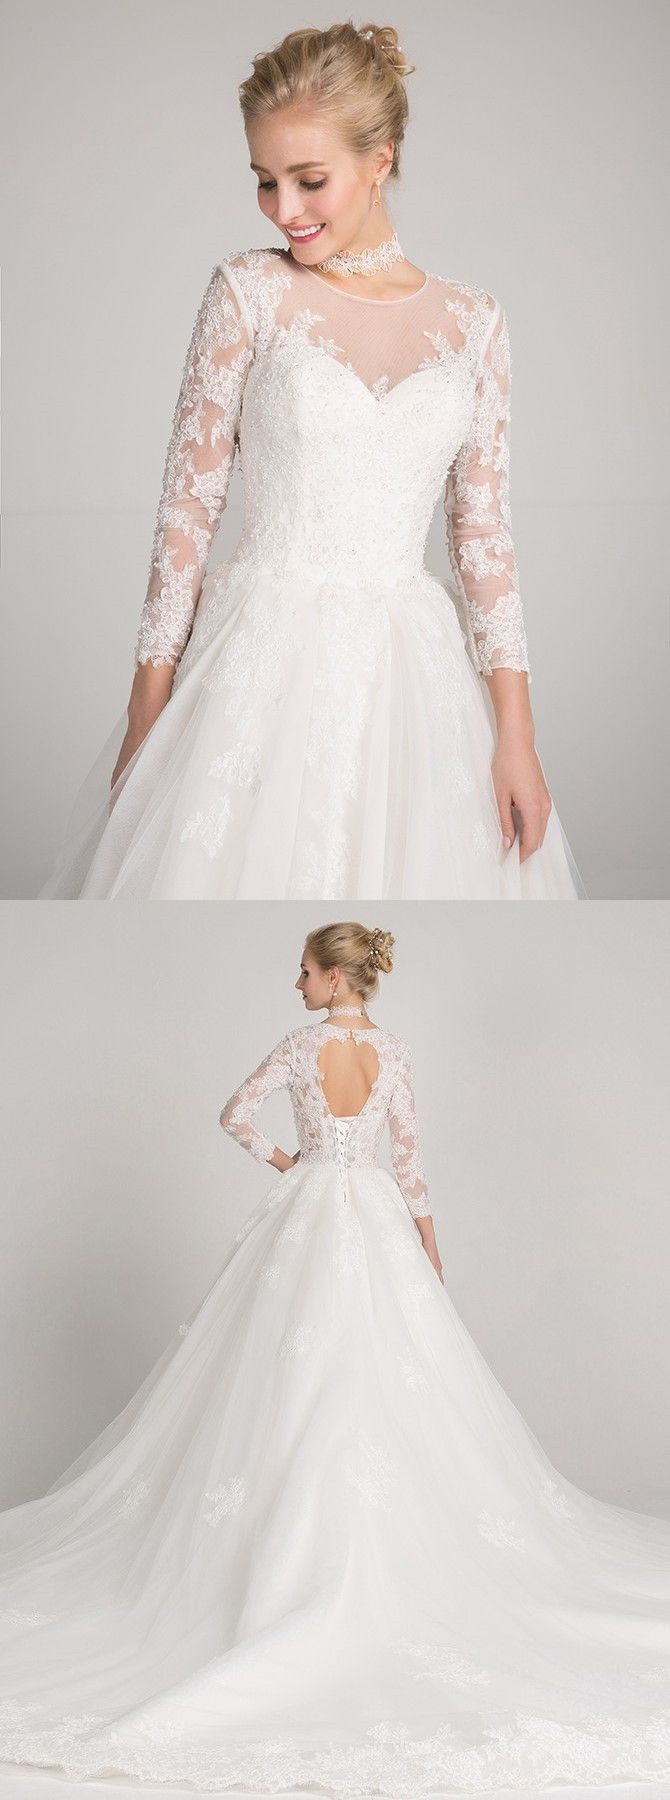 Elegant open back wedding gowns with appliques train chic long